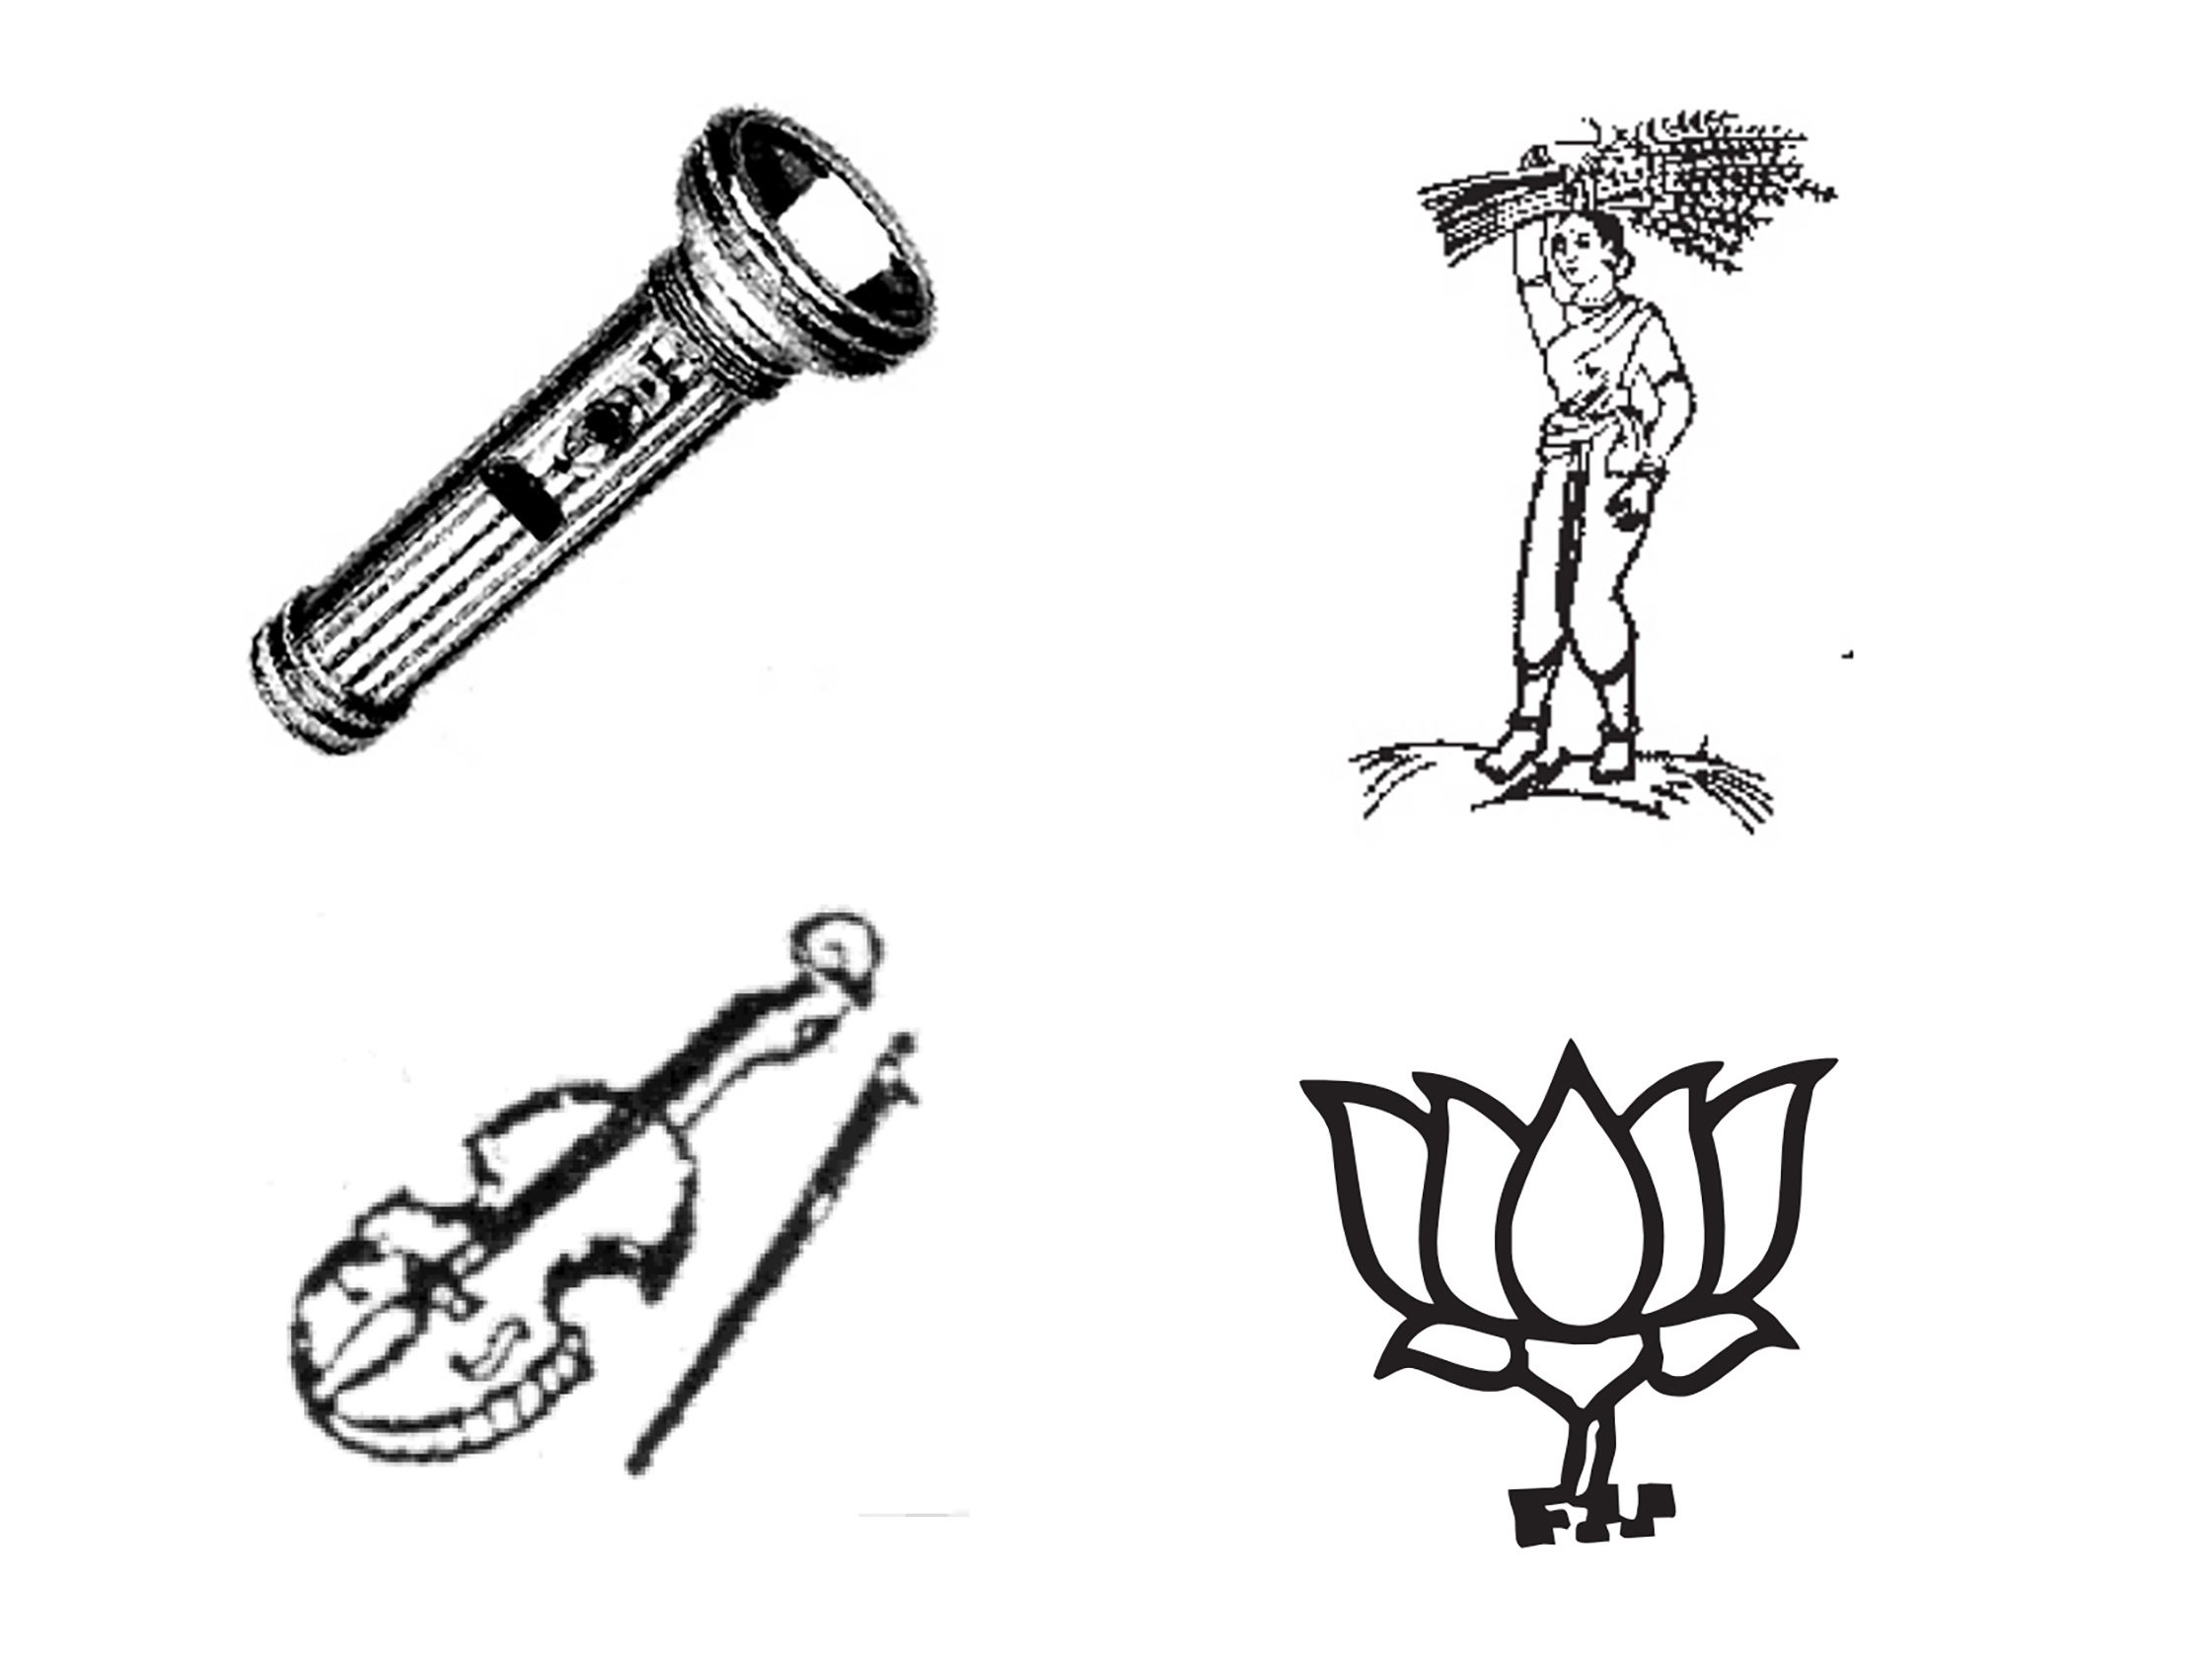 India's Ballot Has Some Really Offbeat Symbols For Its